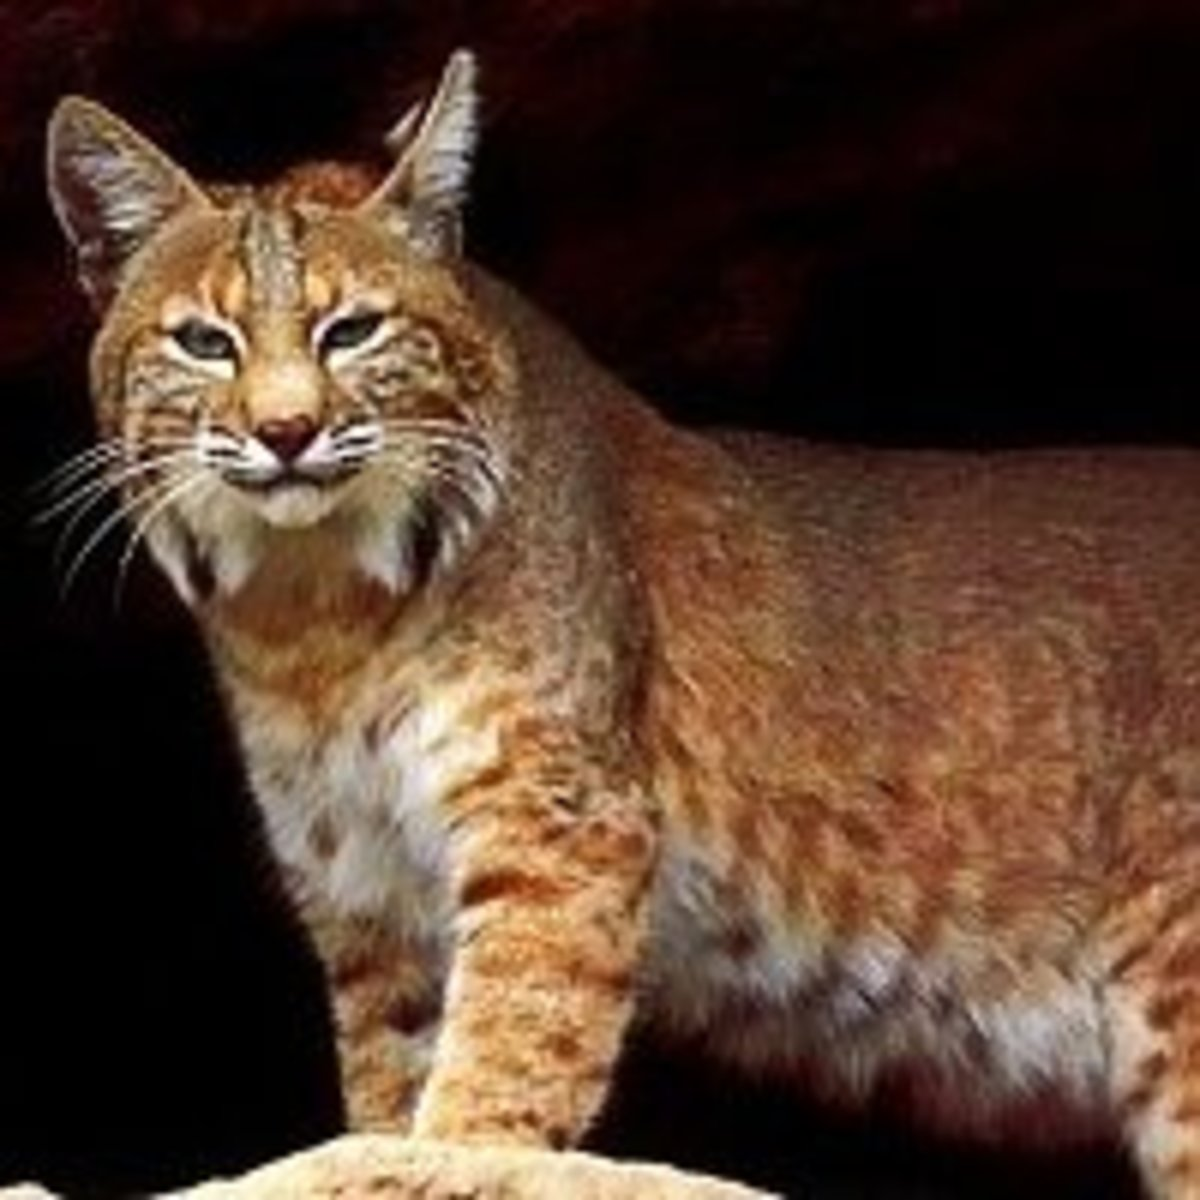 In a hunting directional set, the bobcat is the elder brother of the wolf and represents the southern direction, replacing the badger of the healing directional set.